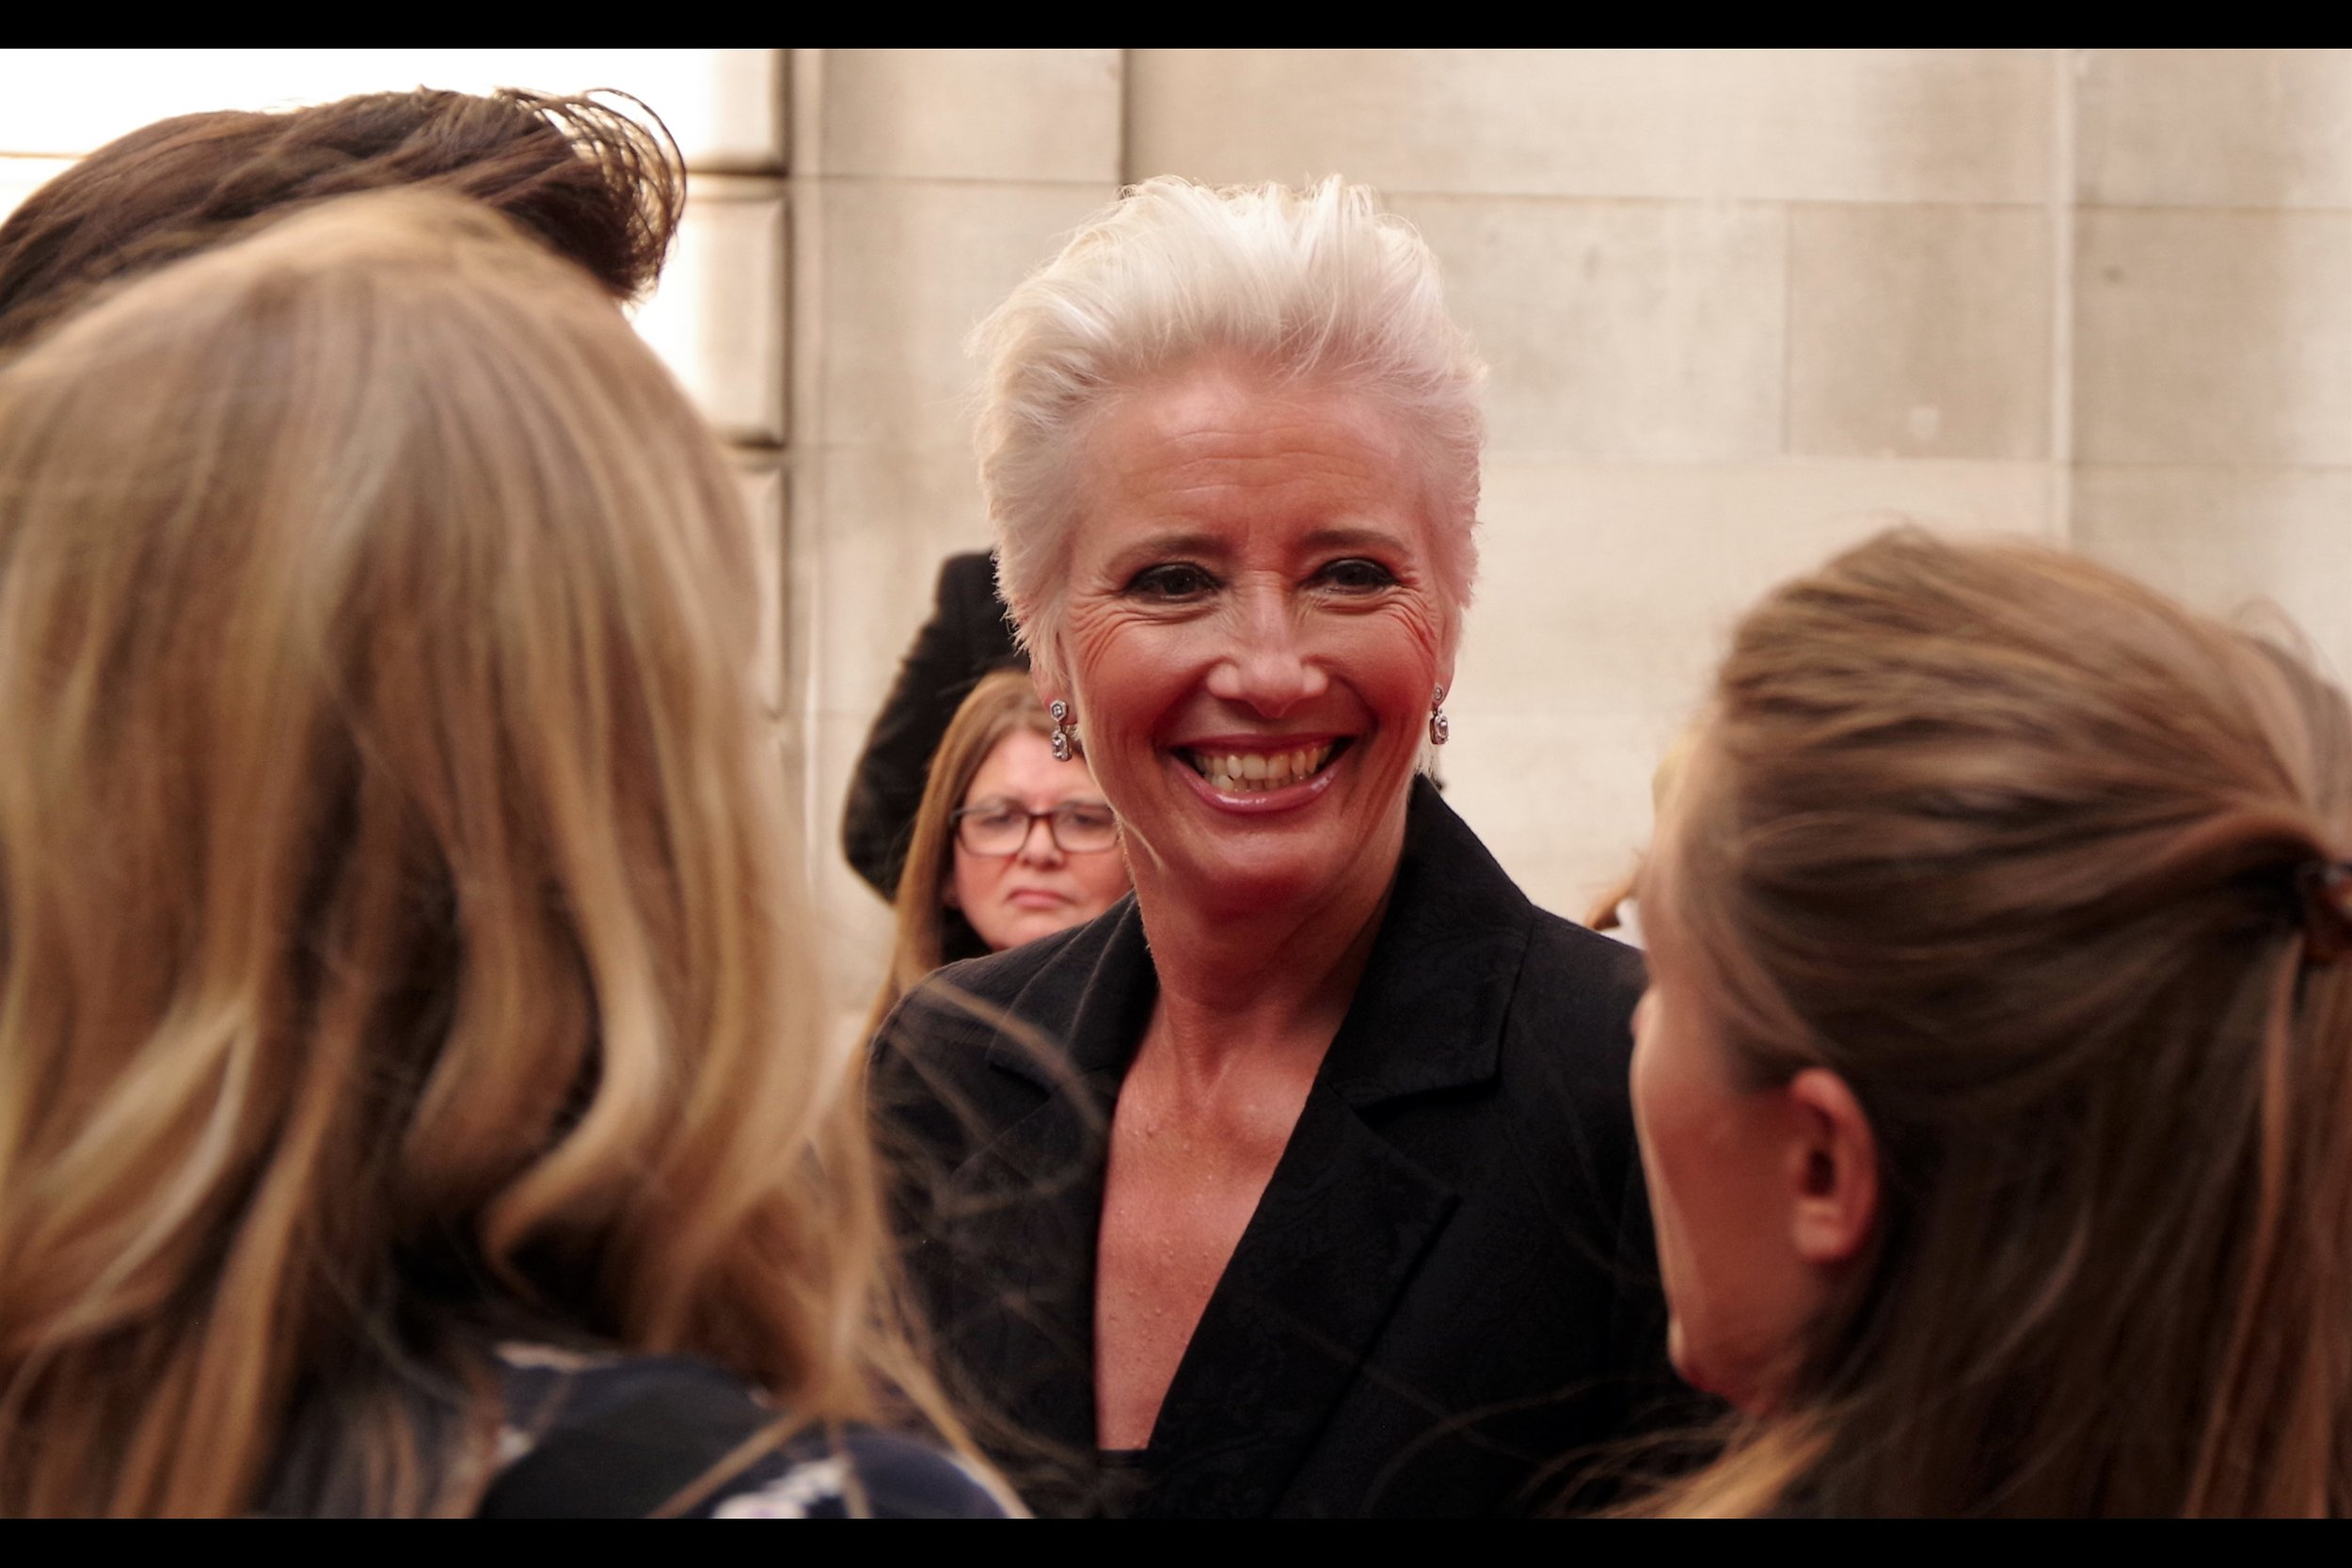 """But I'm a shining beacon of happiness and joy. NOBODY is ever unhappy around me"".  Emma Thompson's filmic biography is long and impressive and includes Shakespeare (Much Ado About Nothing and Henry V), Jane Austen (Sense & Sensibility), JK Rowling (3x    Harry Potters   ), Disney (Brave and Treasure Planet AND    Saving Mr Banks    AND the    Beauty and the Beast remake   )…. and no doubt eventually Marvel/DC and Star Wars to follow."